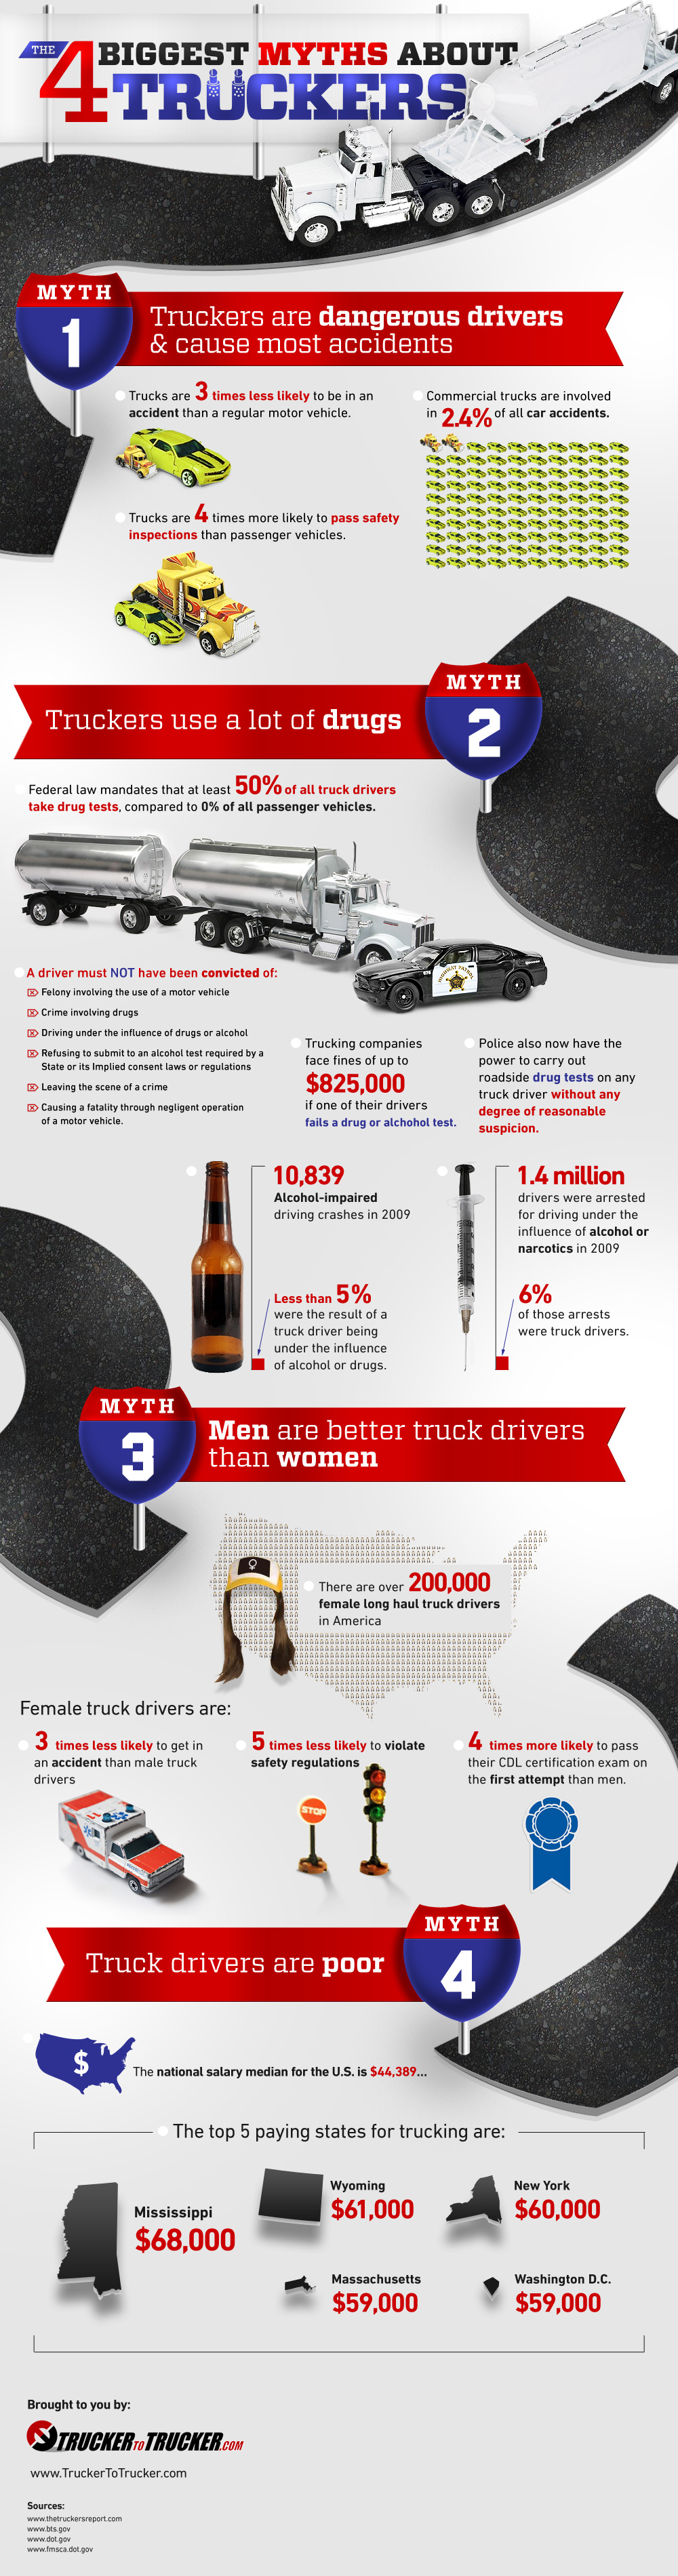 the-four-biggest-myths-about-truckers_51e9a545094ca